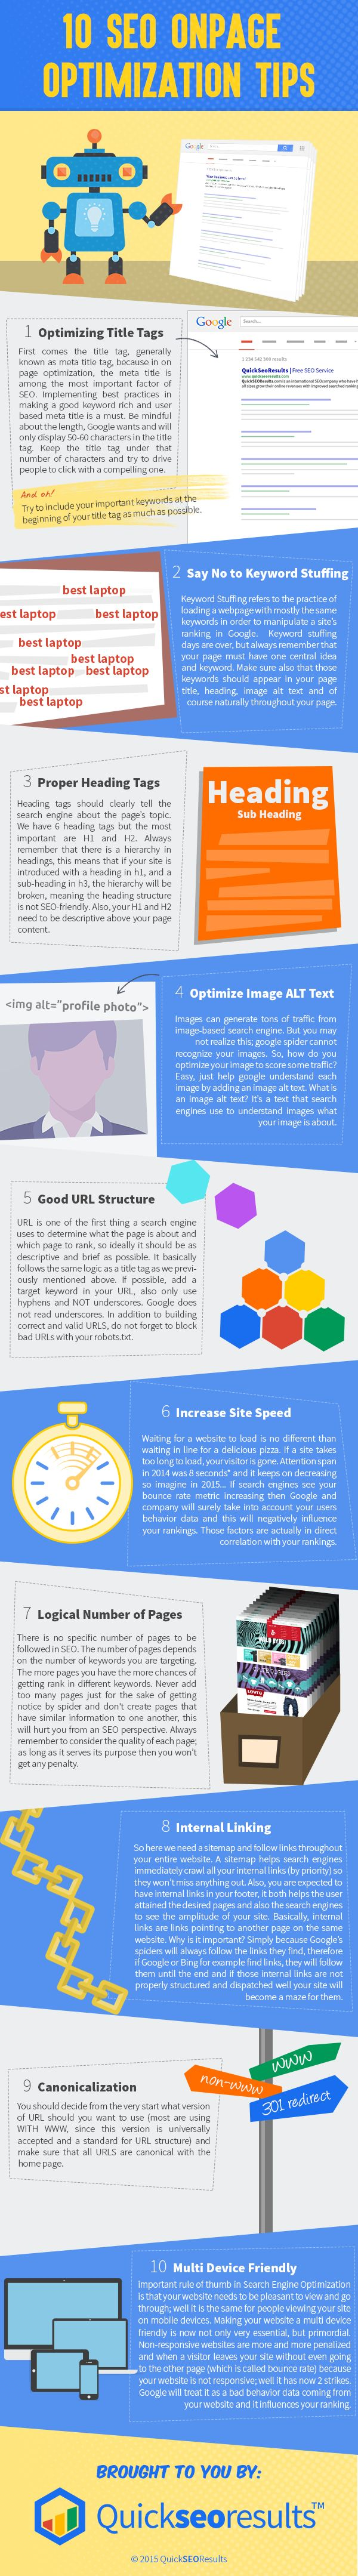 10 SEO Onpage Optimization Tips #infographic #SEO http://www.intelisystems.com/resources/case-study/ @marcomznetworks